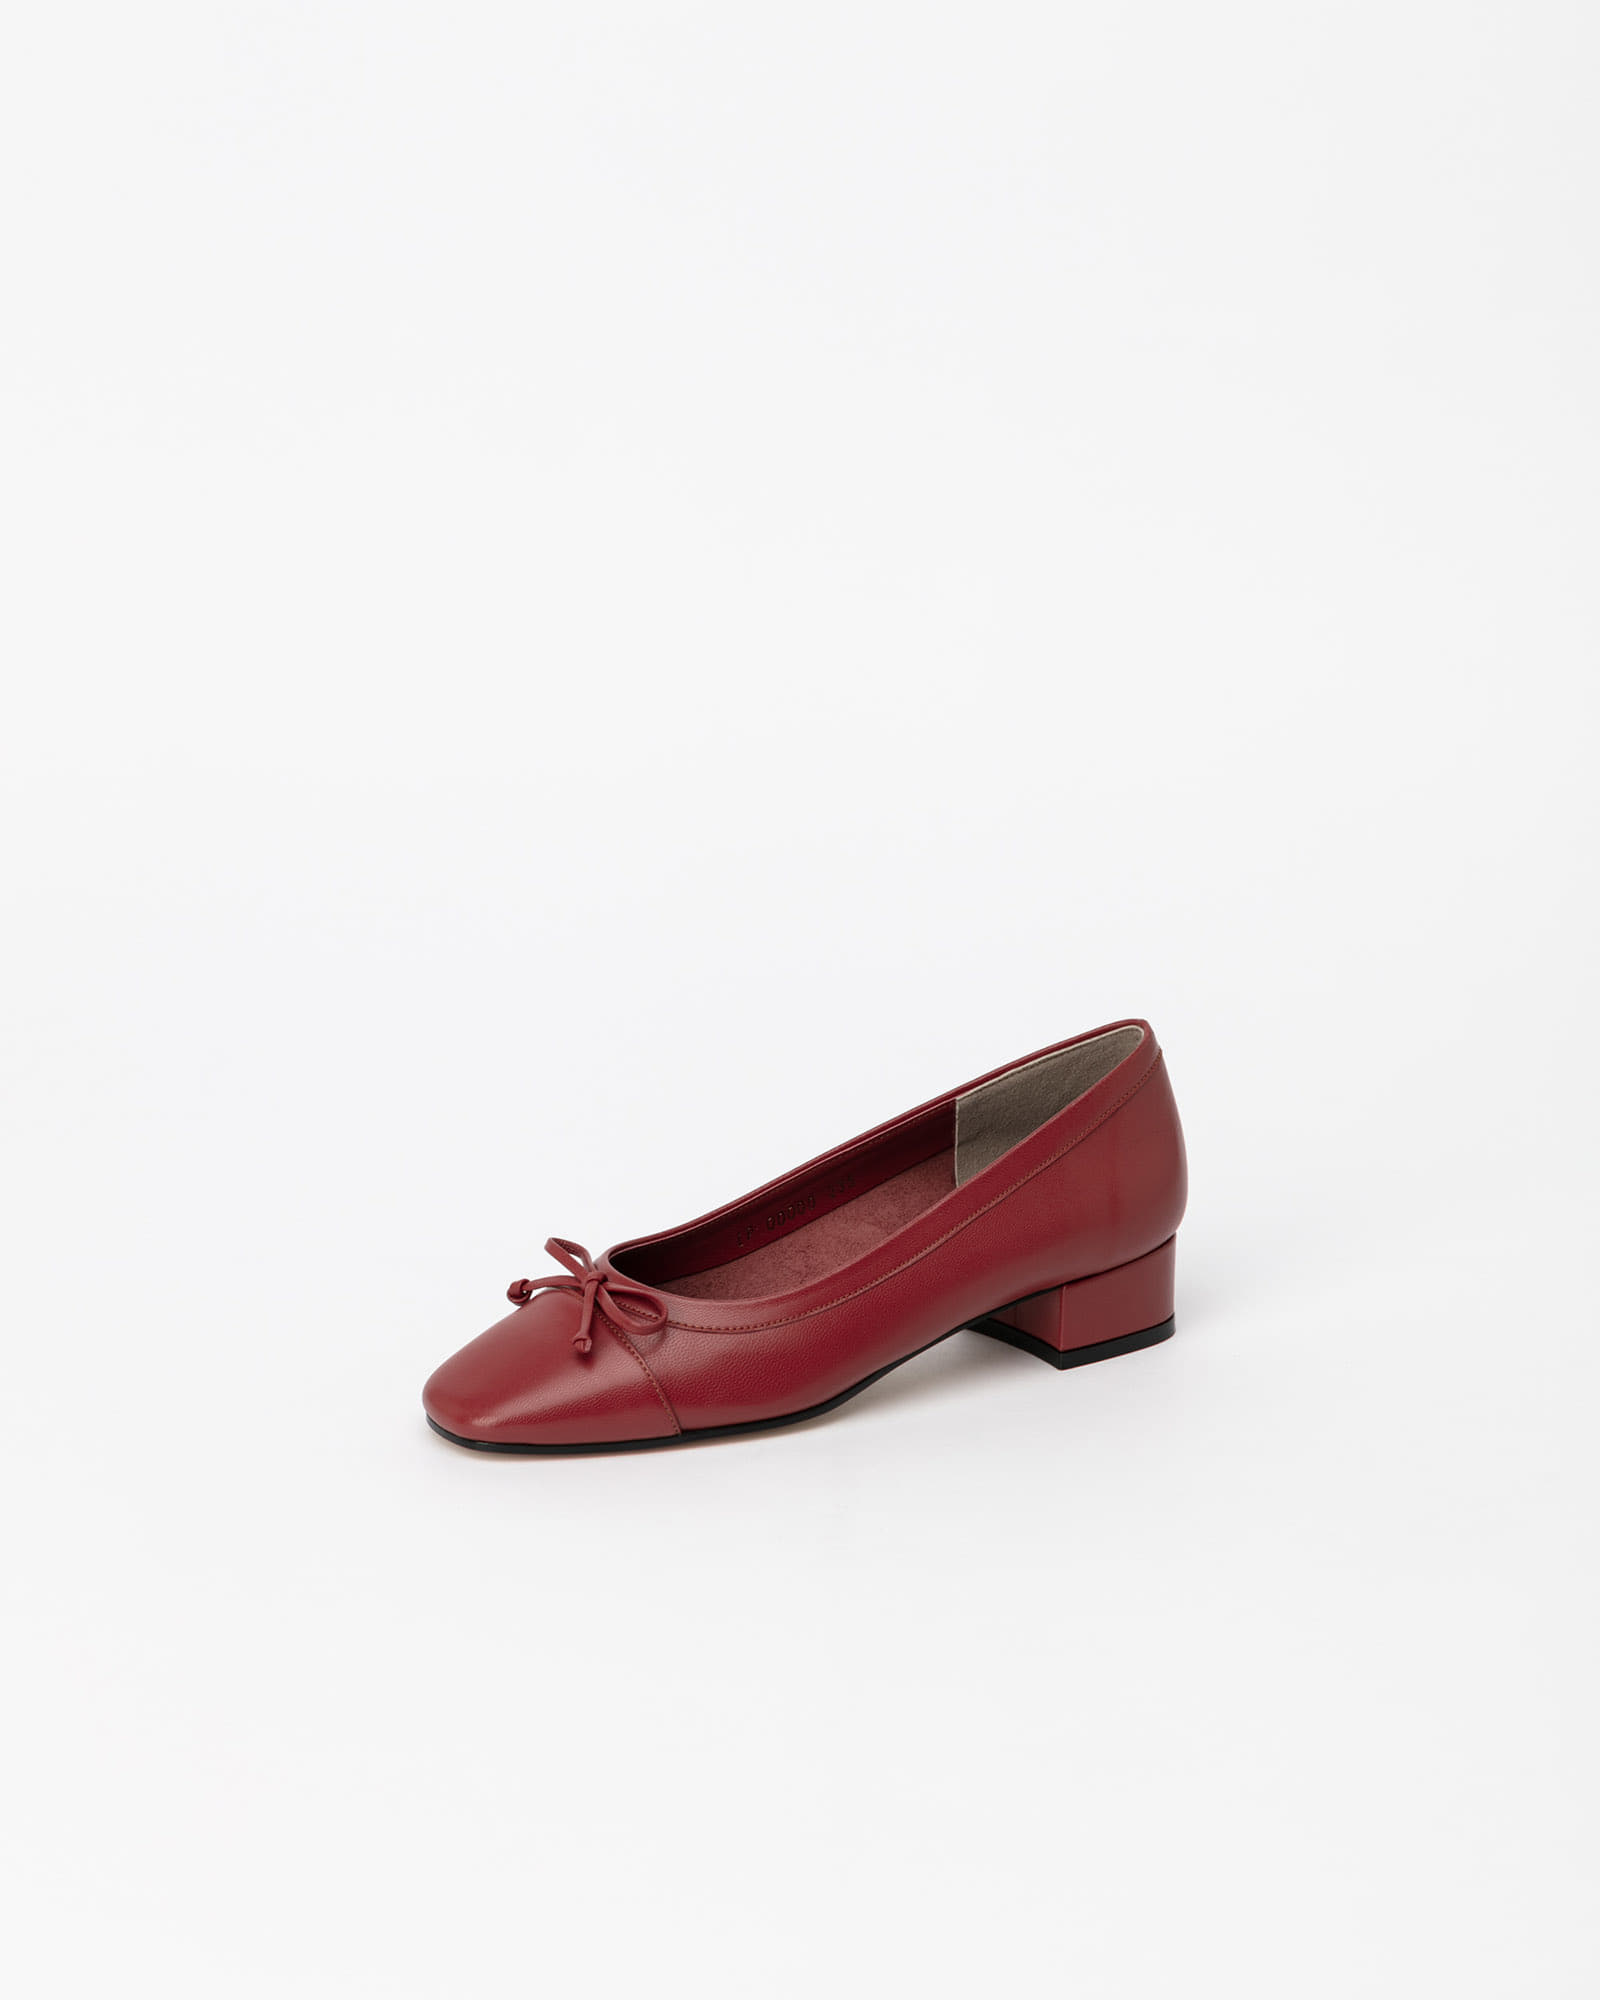 Alice Soft Ballerinas in Ruby Brown